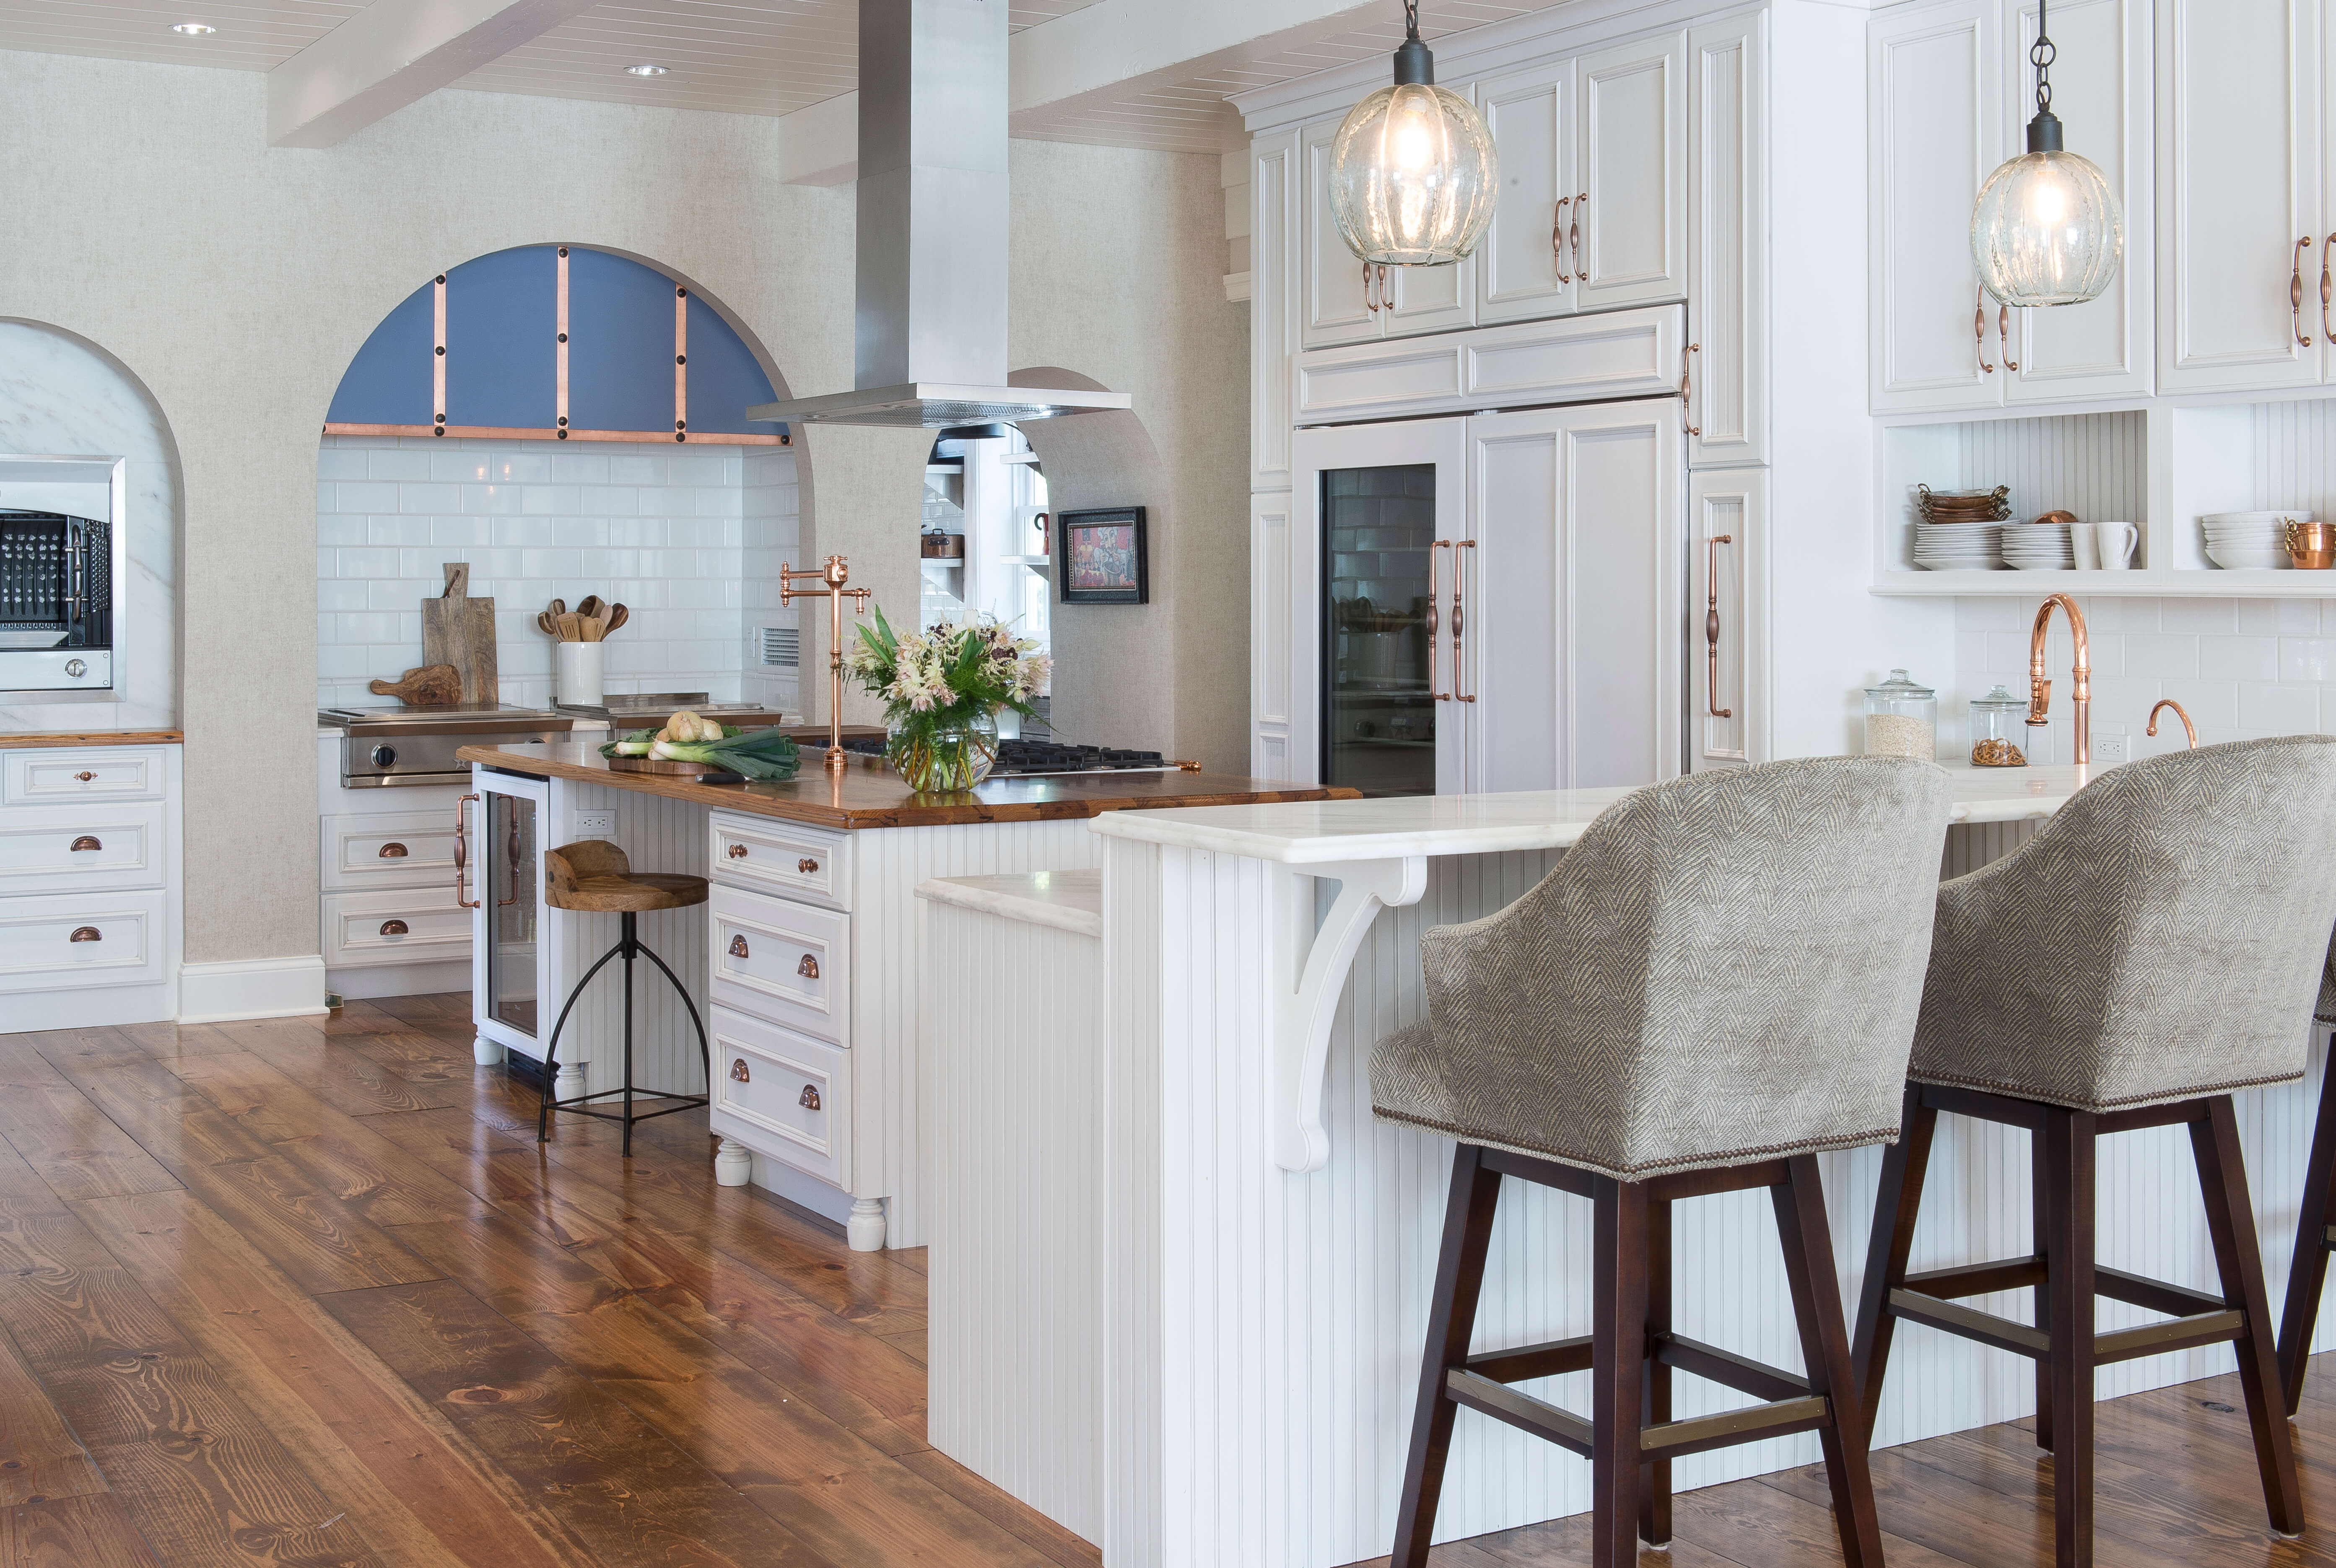 The breakfast bar has a 2-tier countertop to separate the dining space from the countertop near the sink for food prep.